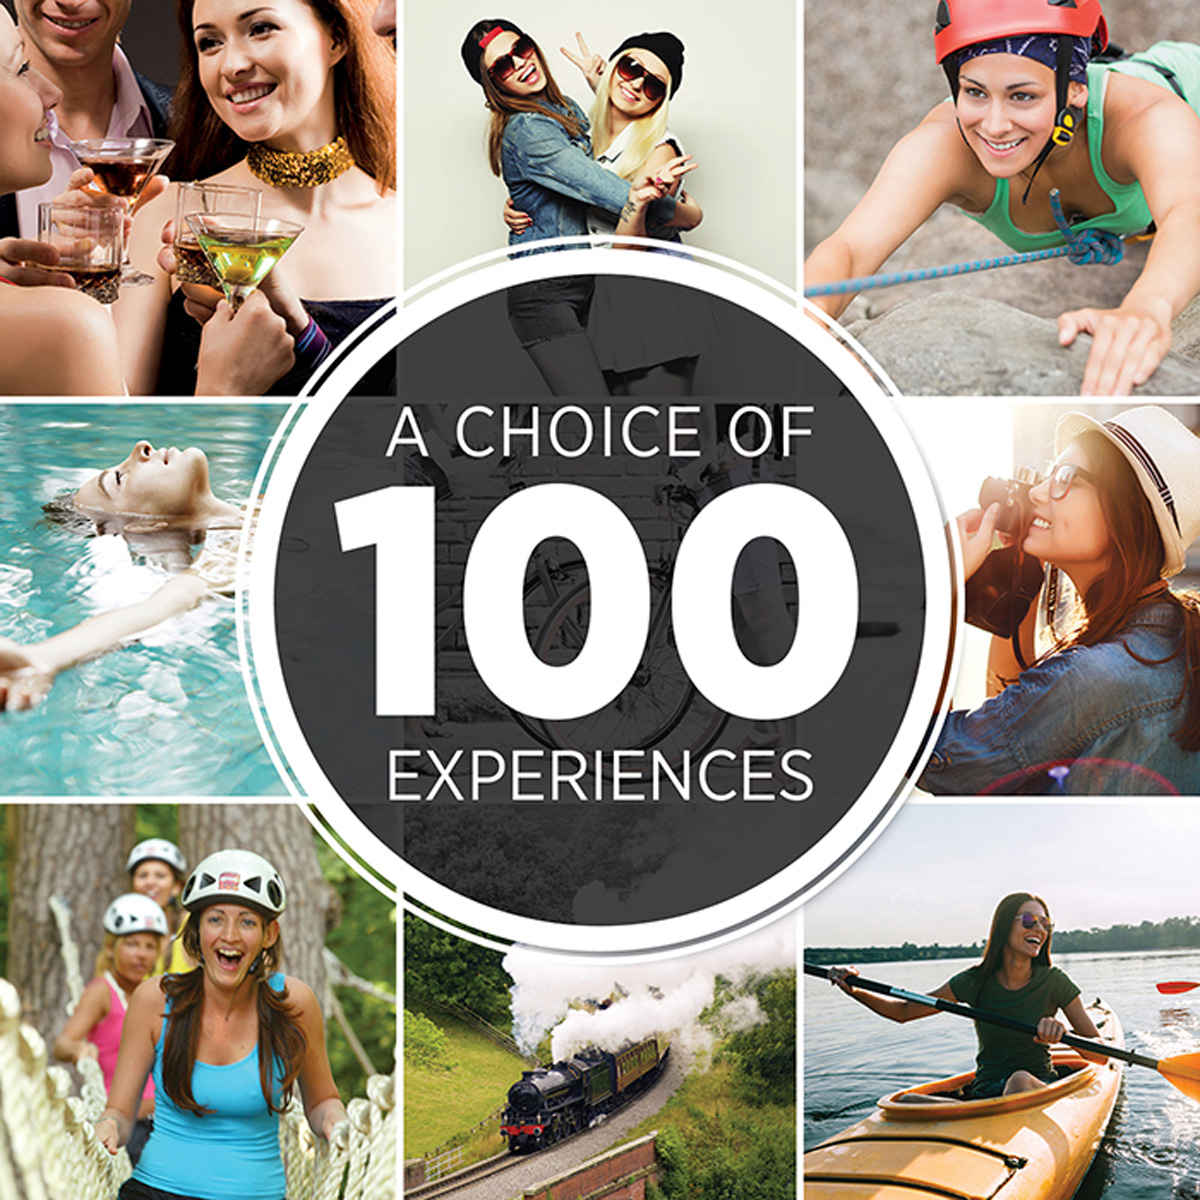 Ultimate Choice for Her - Experience Day Choice Pack